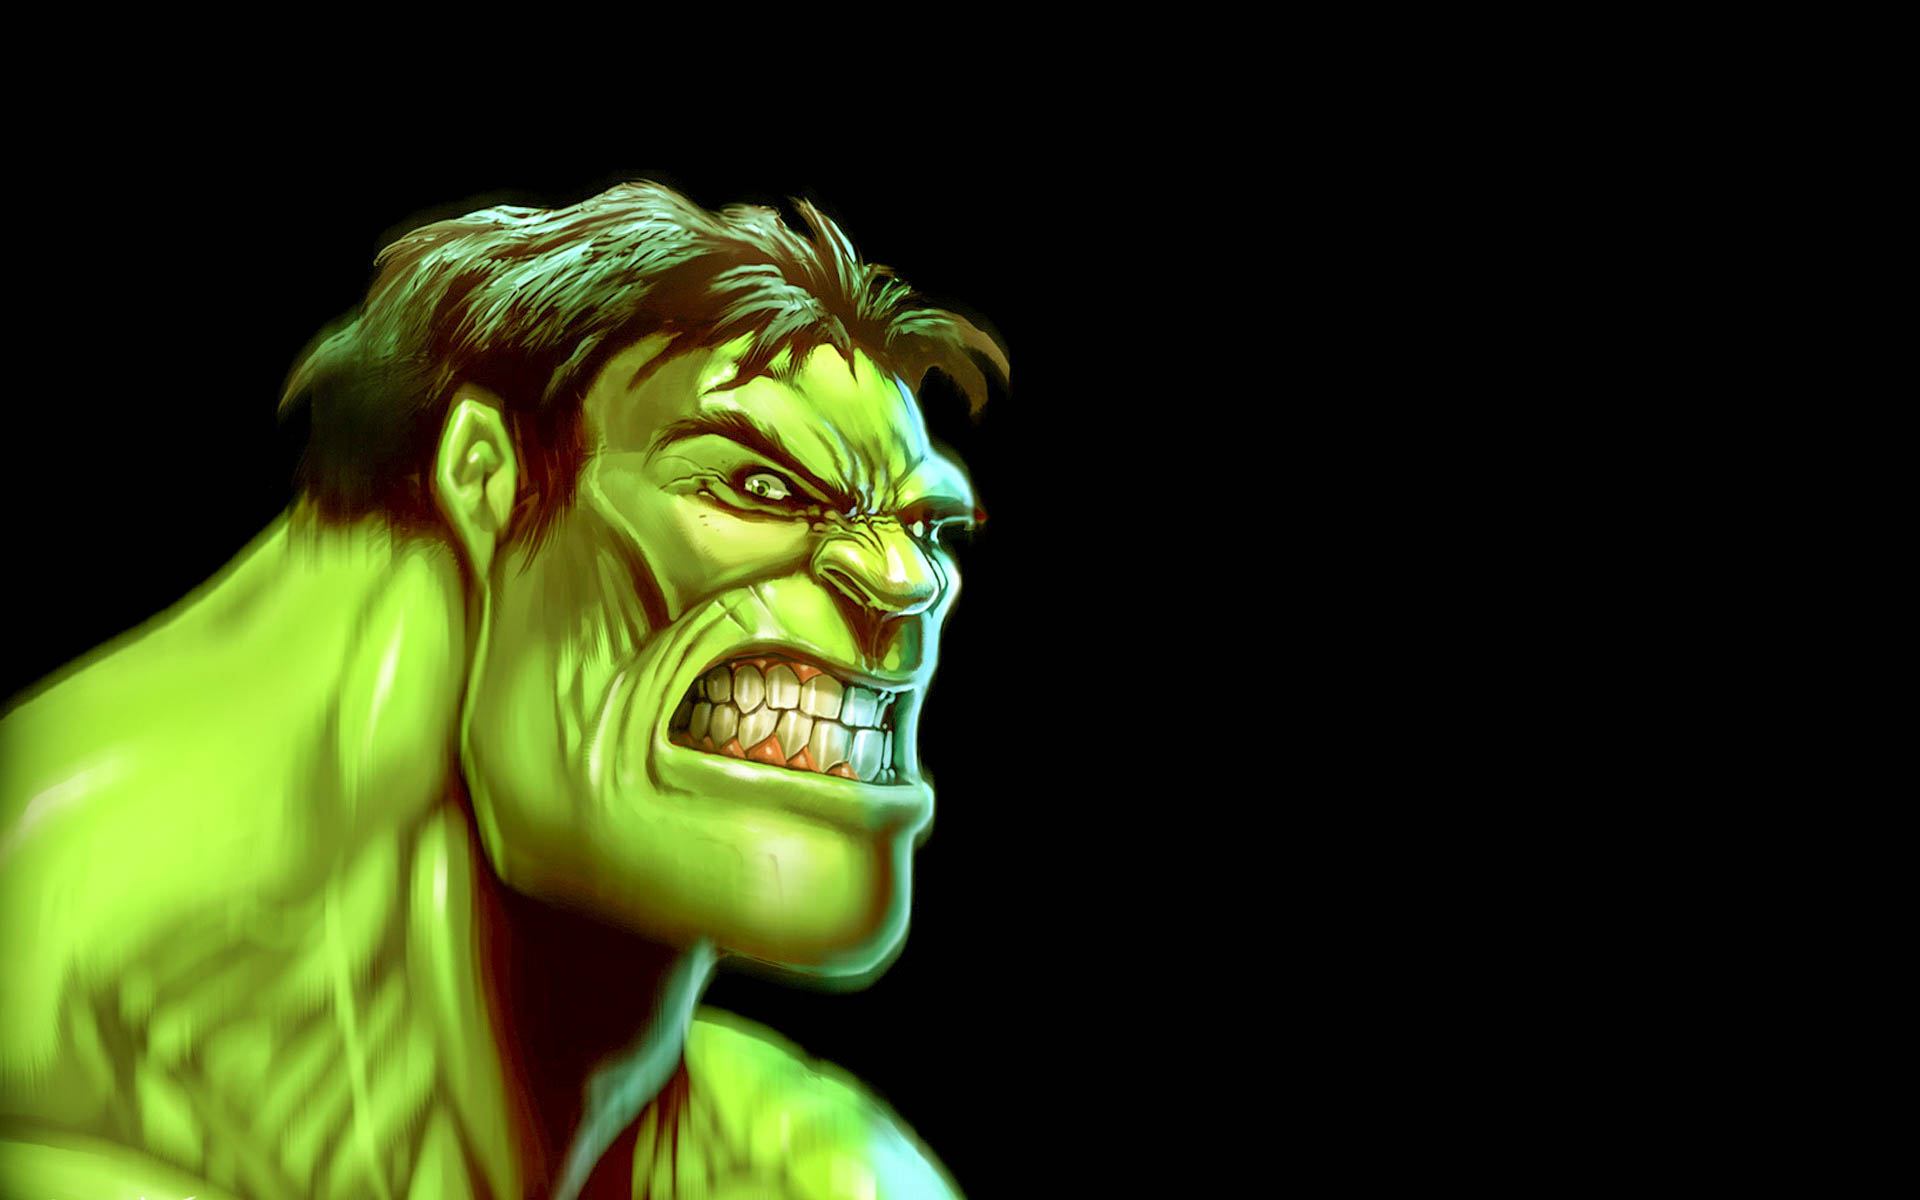 Hd 3d Wallpapers For Pc Full Screen Free Download Hulk New Hd Wallpapers Amp Desktop Backgrounds All Hd